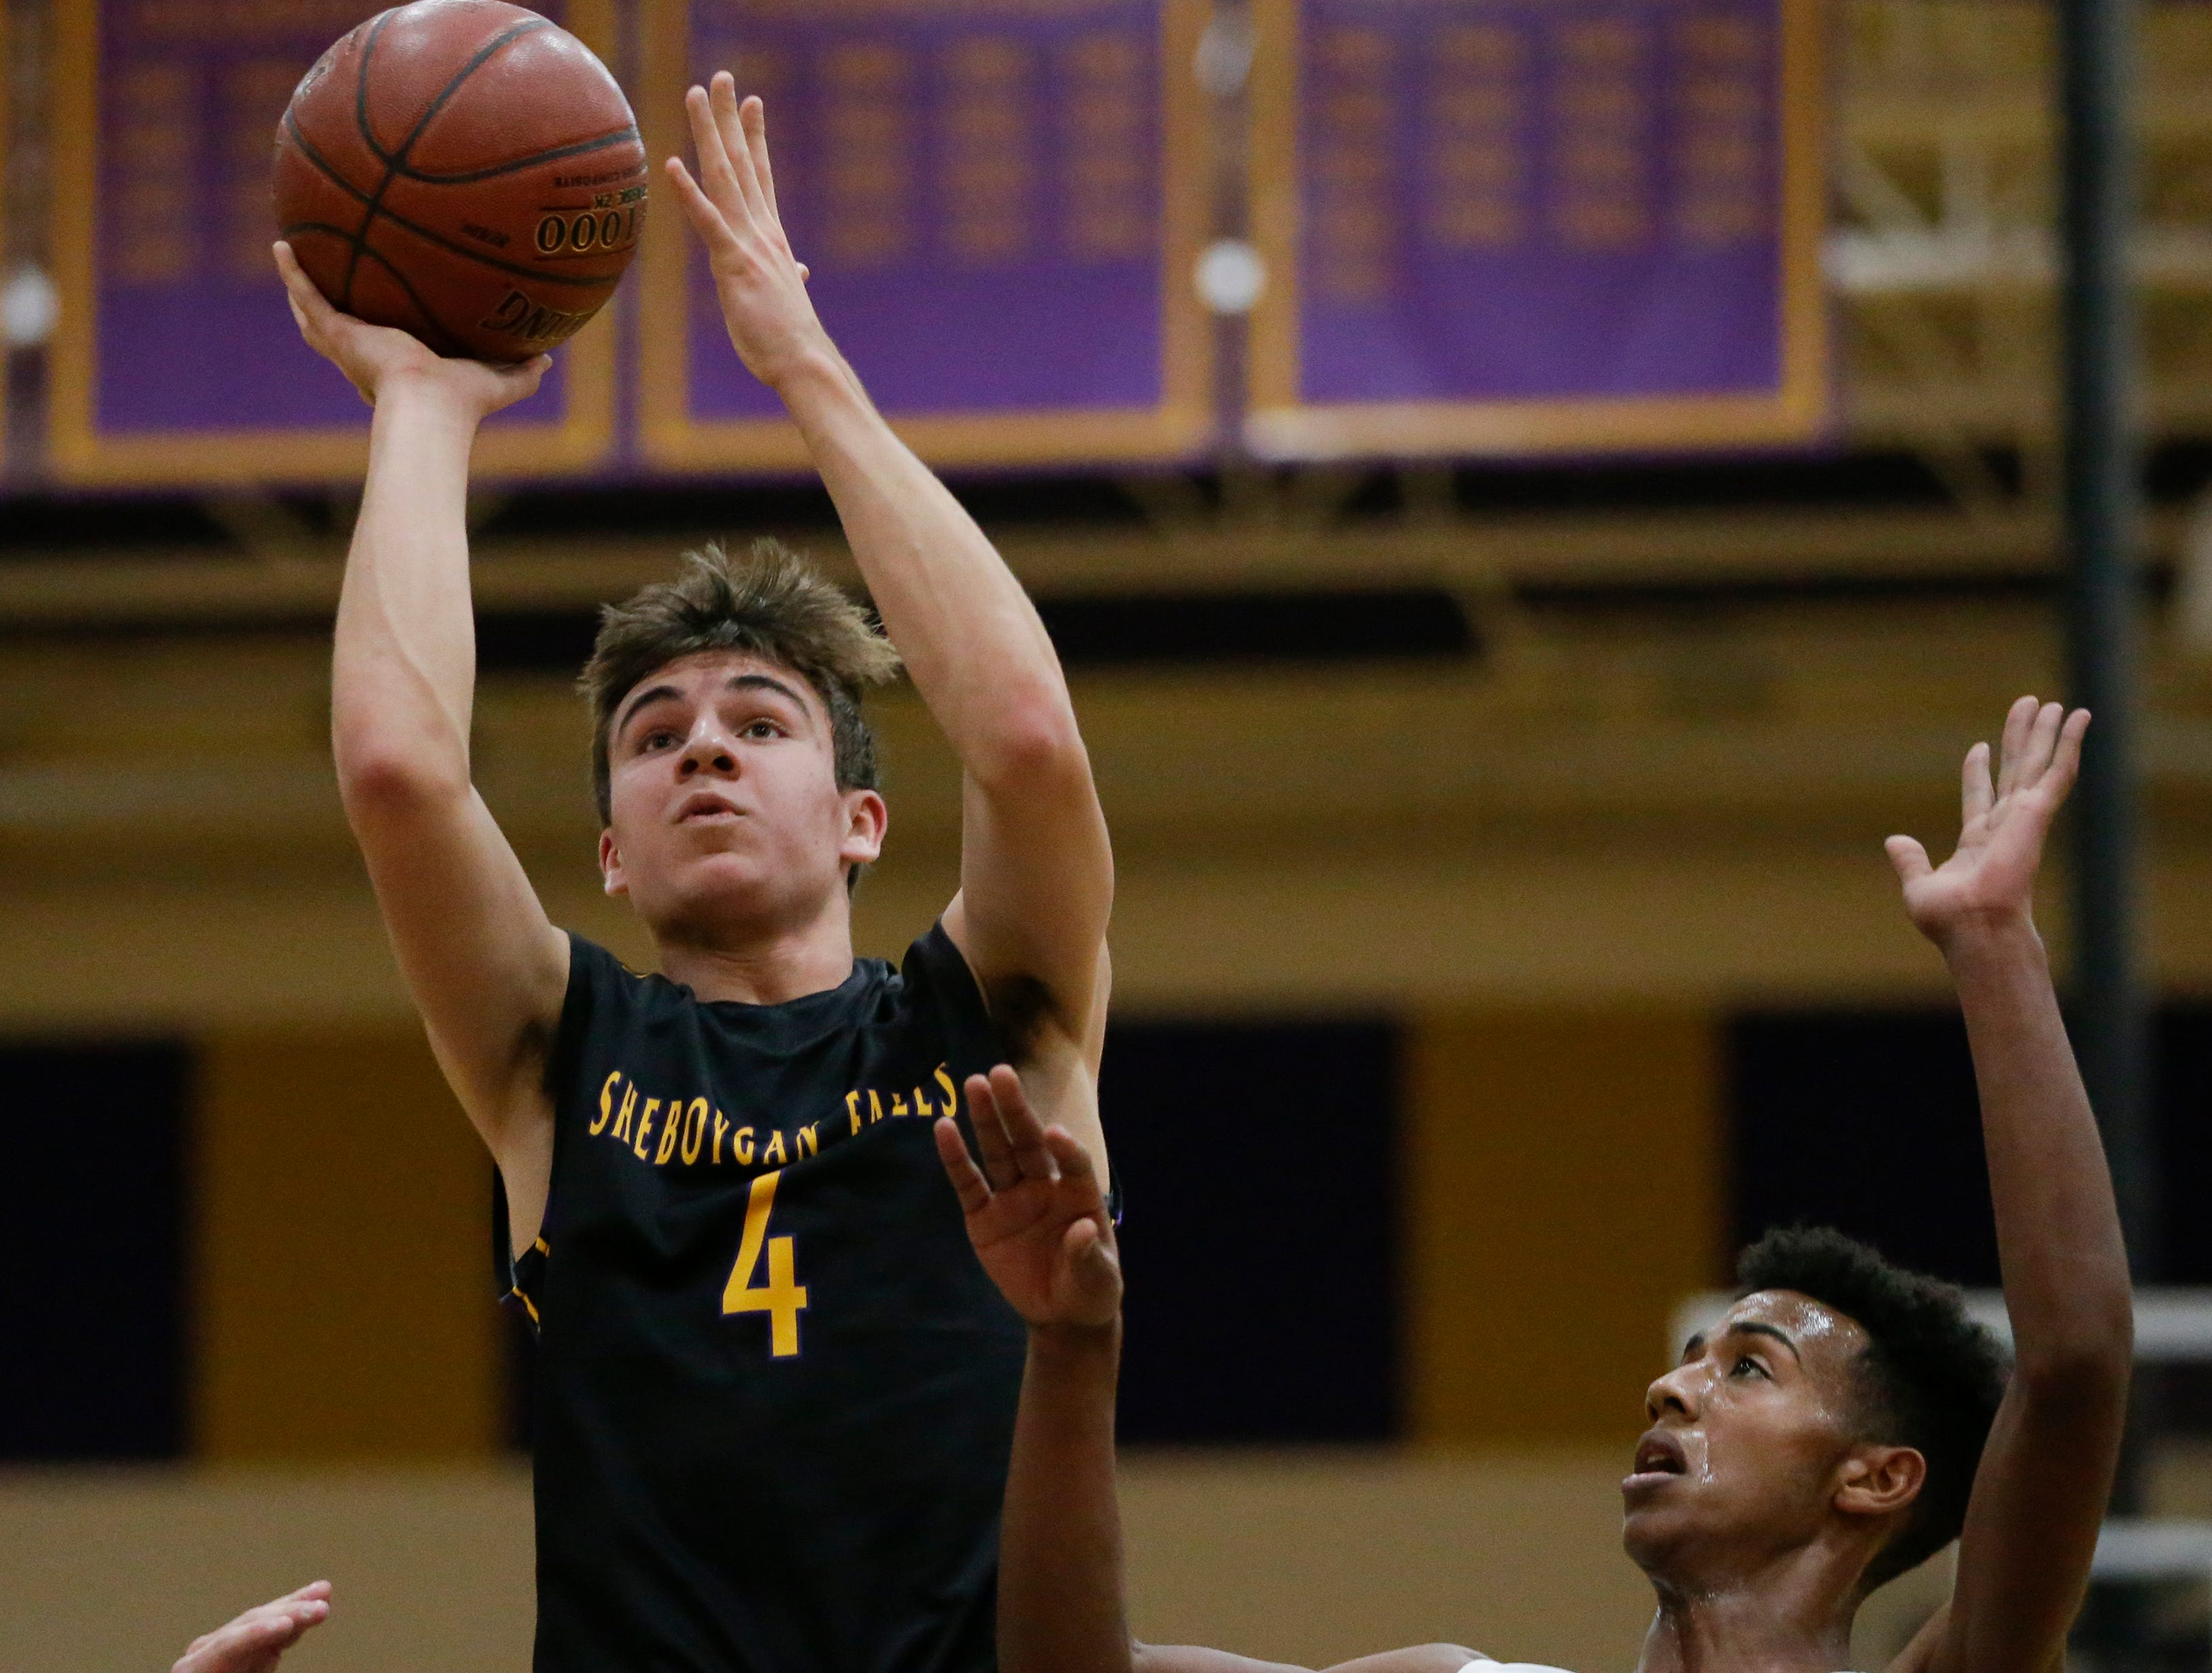 Sheboygan Falls' Jonathan Bassuener puts up a shot against Two Rivers during an Eastern Wisconsin Conference game at Two Rivers High School Tuesday, December 4, 2018, in Two Rivers, Wis. Joshua Clark/USA TODAY NETWORK-Wisconsin